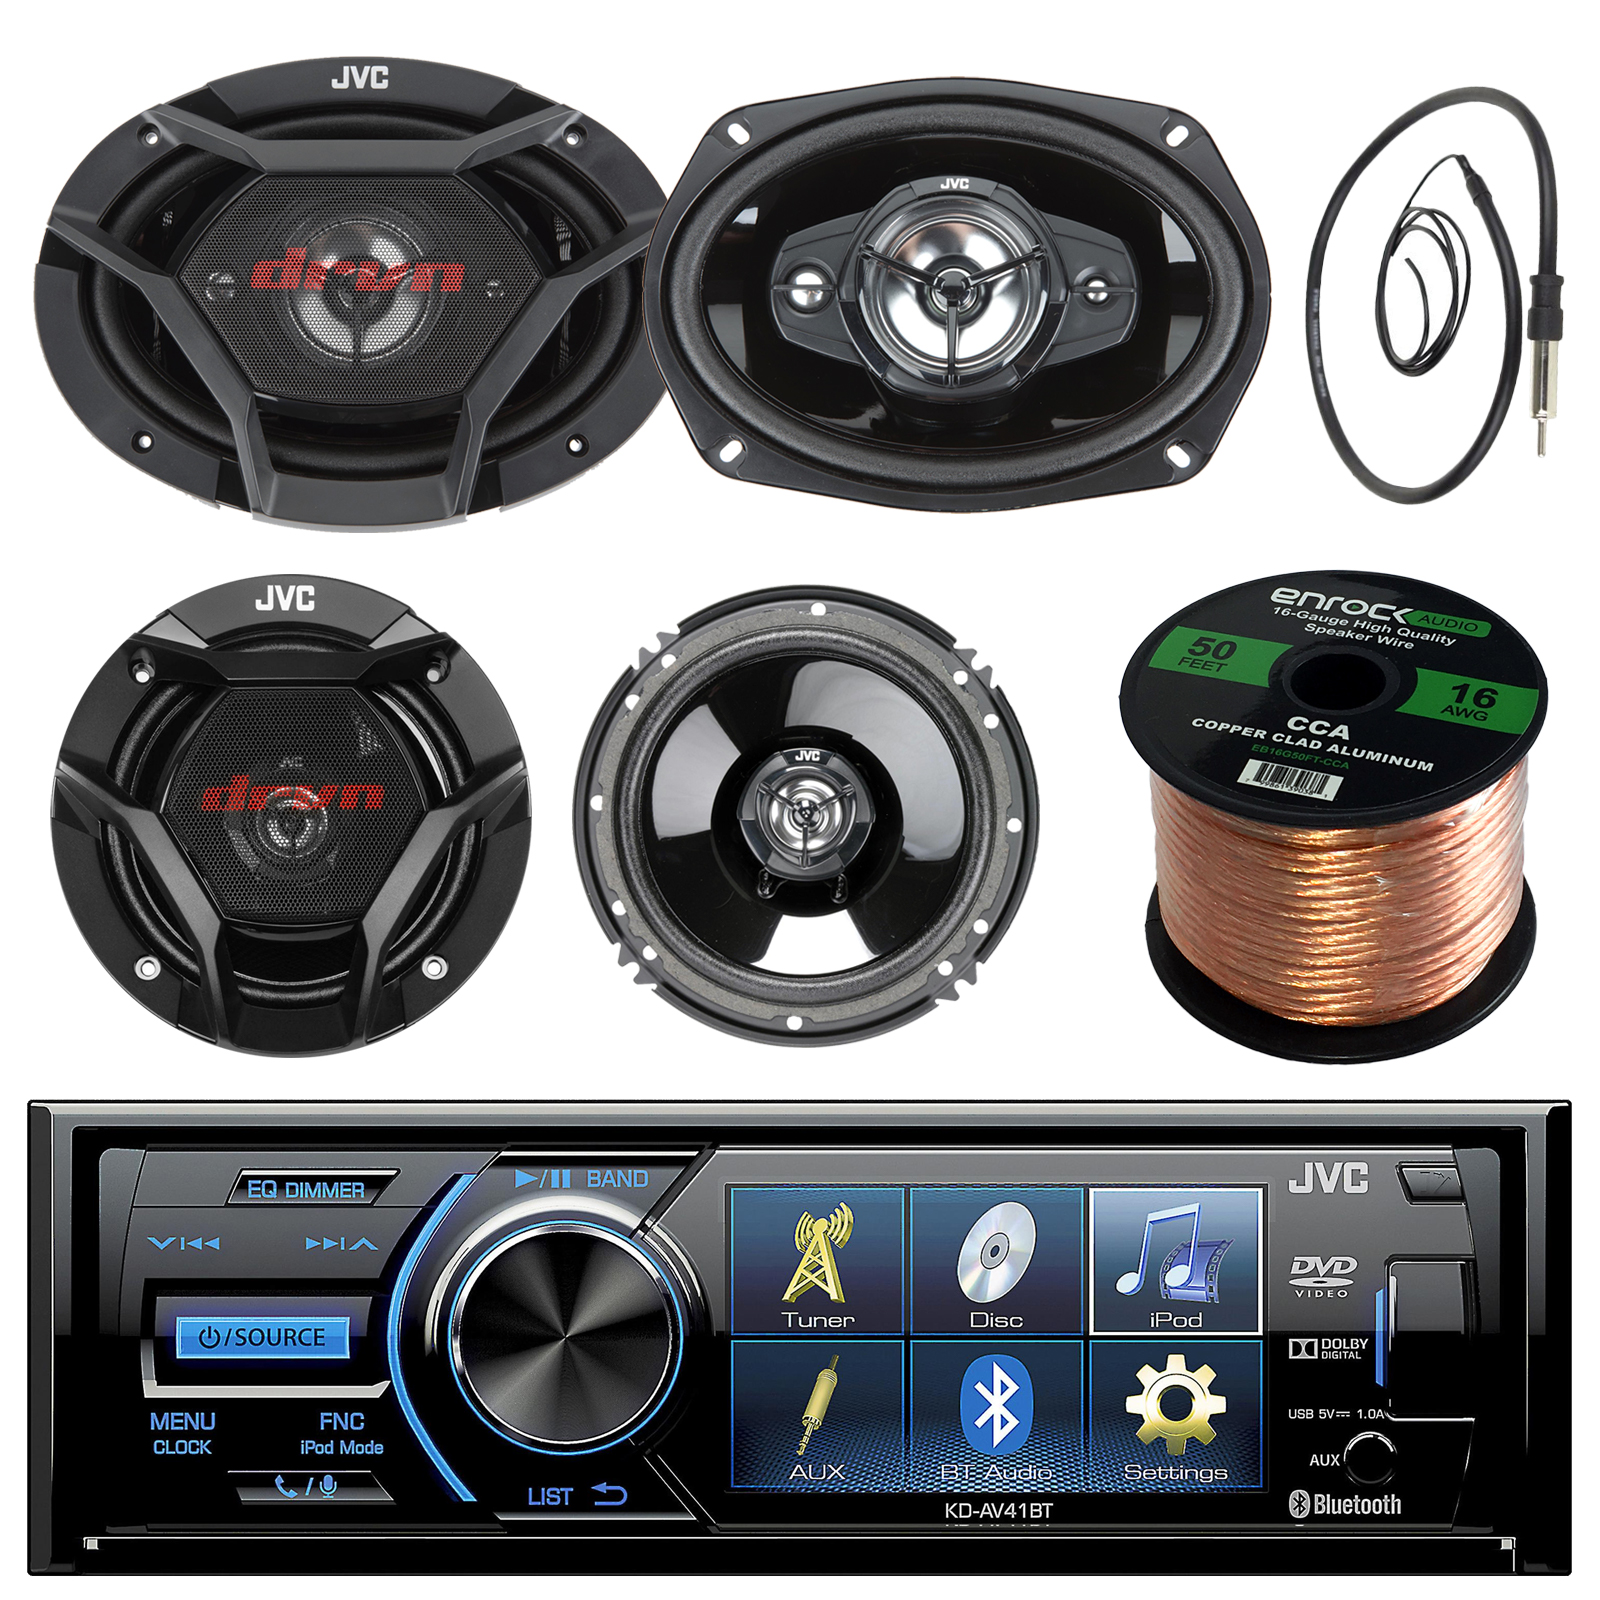 "JVC KD-AV41BT 3"" Car DVD Bluetooth Stereo Receiver Bundle Combo With 2x Dual 6.5"" 2-Way And 2x 6x9"" Inch 4-Way Audio Coaxial Upgrade Speakers + Enrock 22"" AM/FM Antenna + 50 Foot 16 Gauge Speaker Wire"